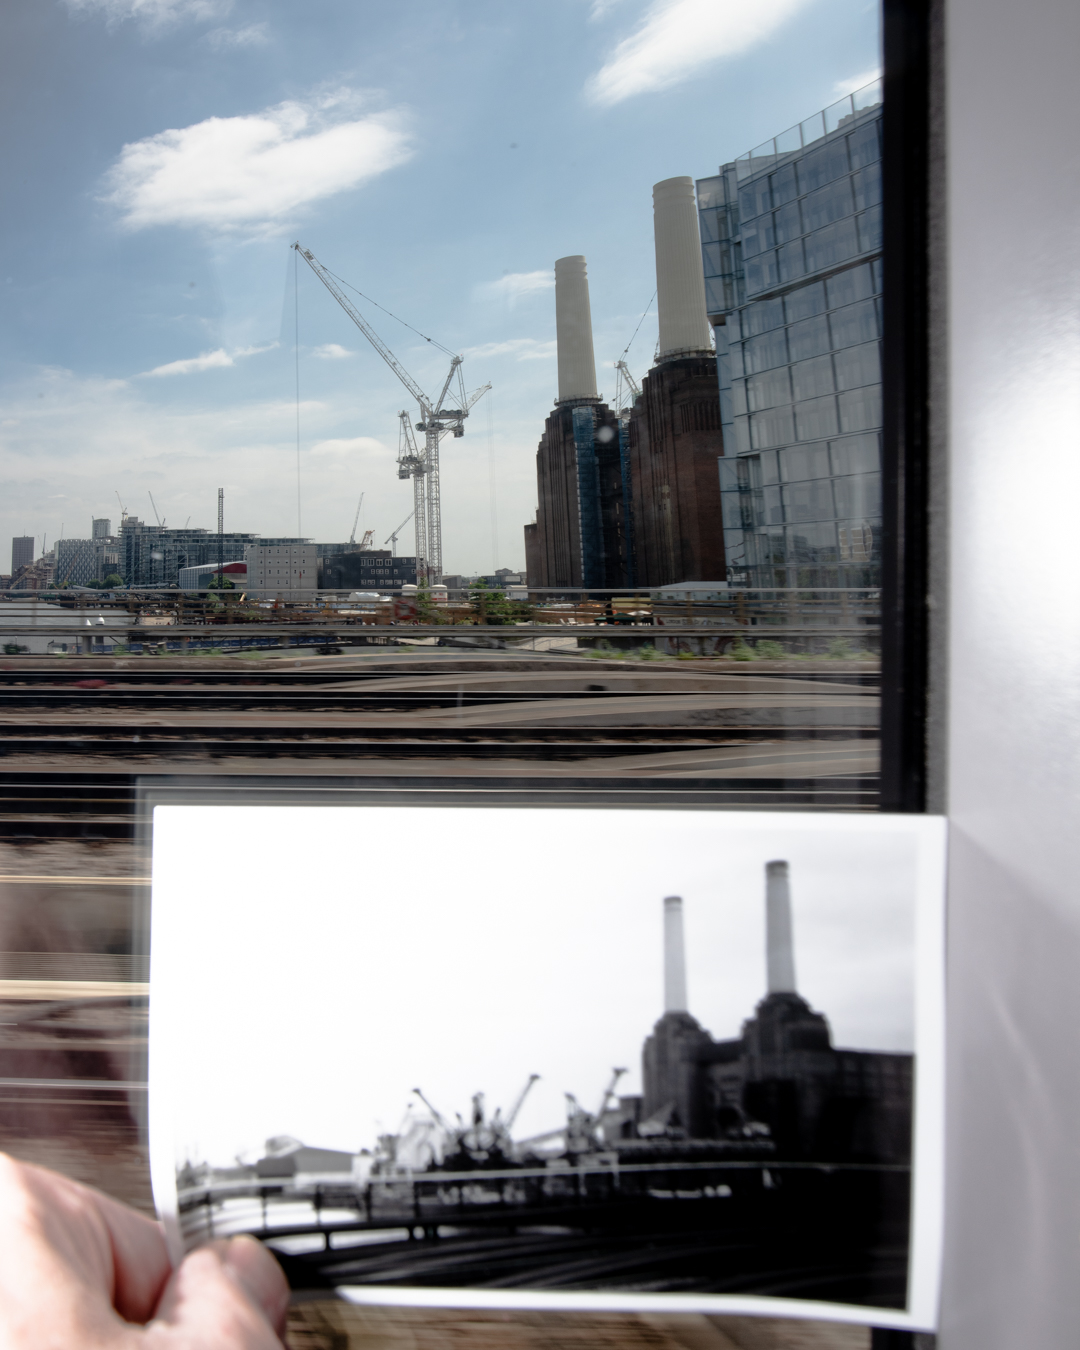 Image of the Battersea Power Station and 1973 photograph taken by Graham Land, June2018